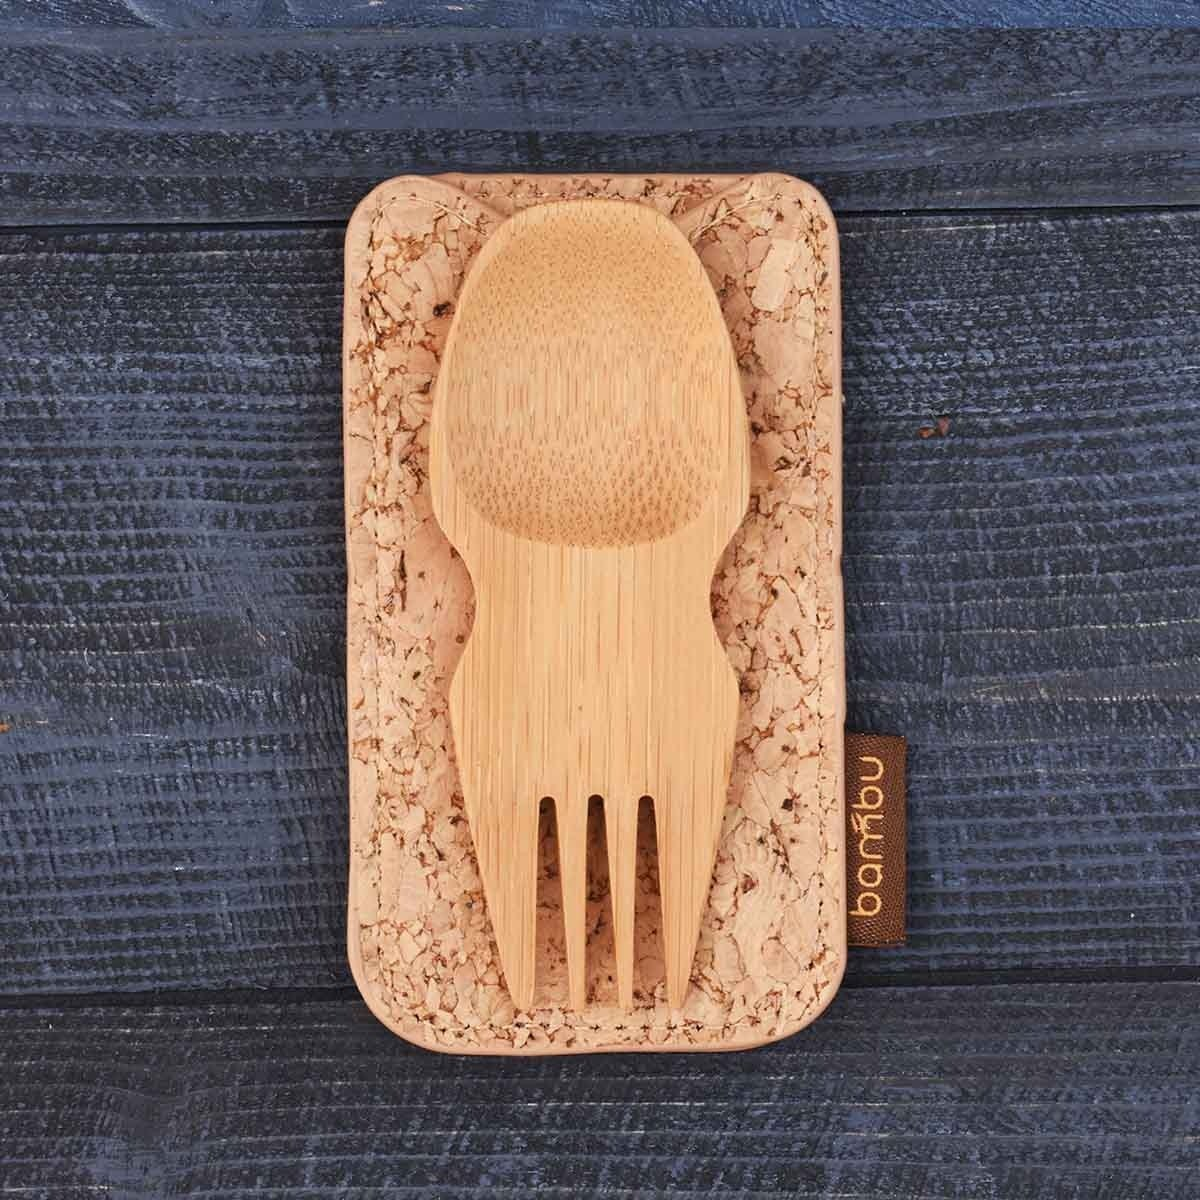 bamboo spork and cork travel set